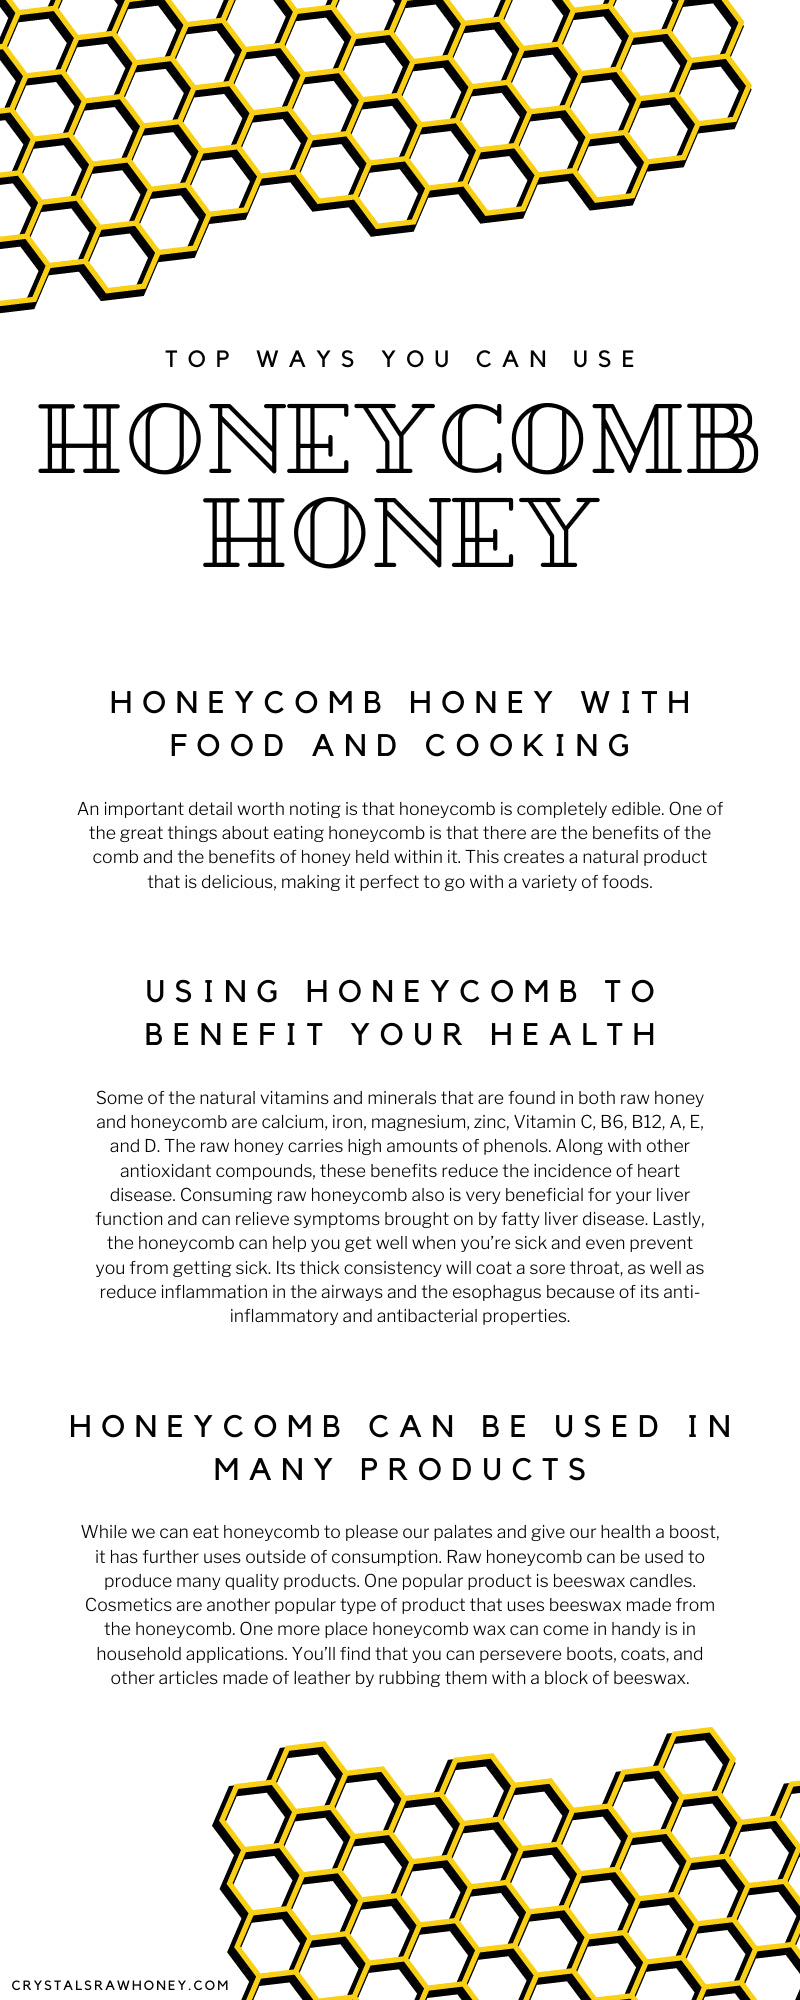 Top Ways You Can Use Honeycomb Honey